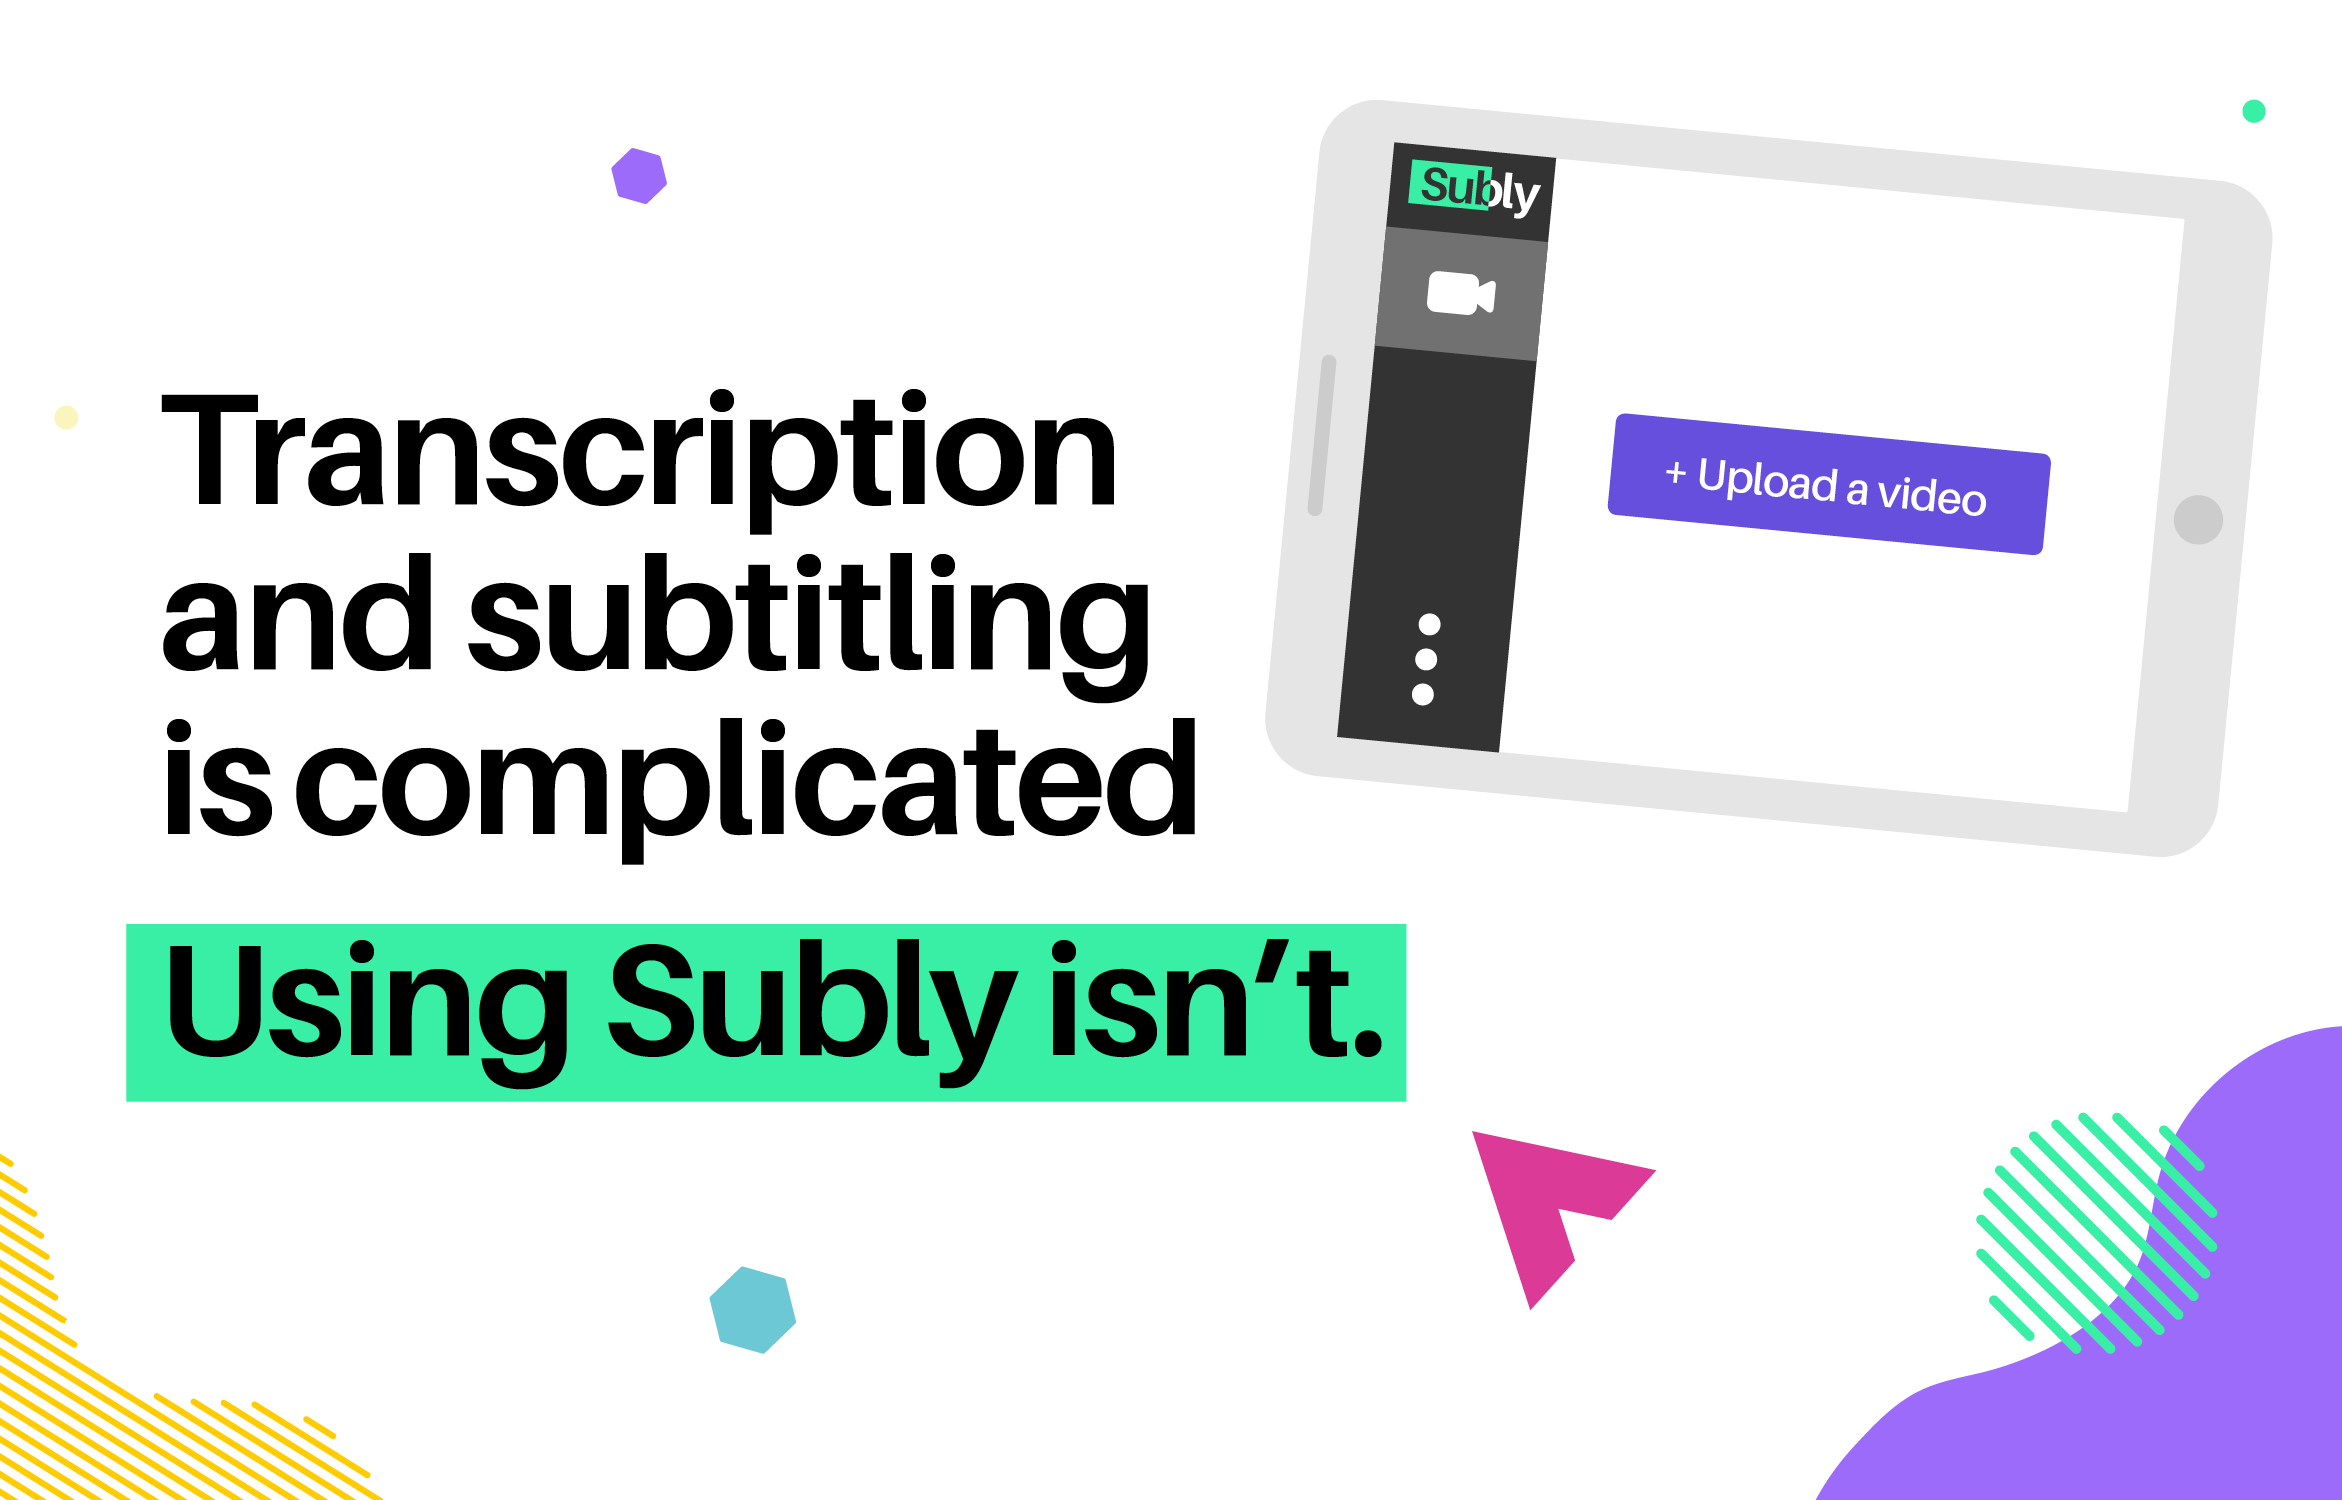 text image transcription and subtitling is complicated using subly isn't